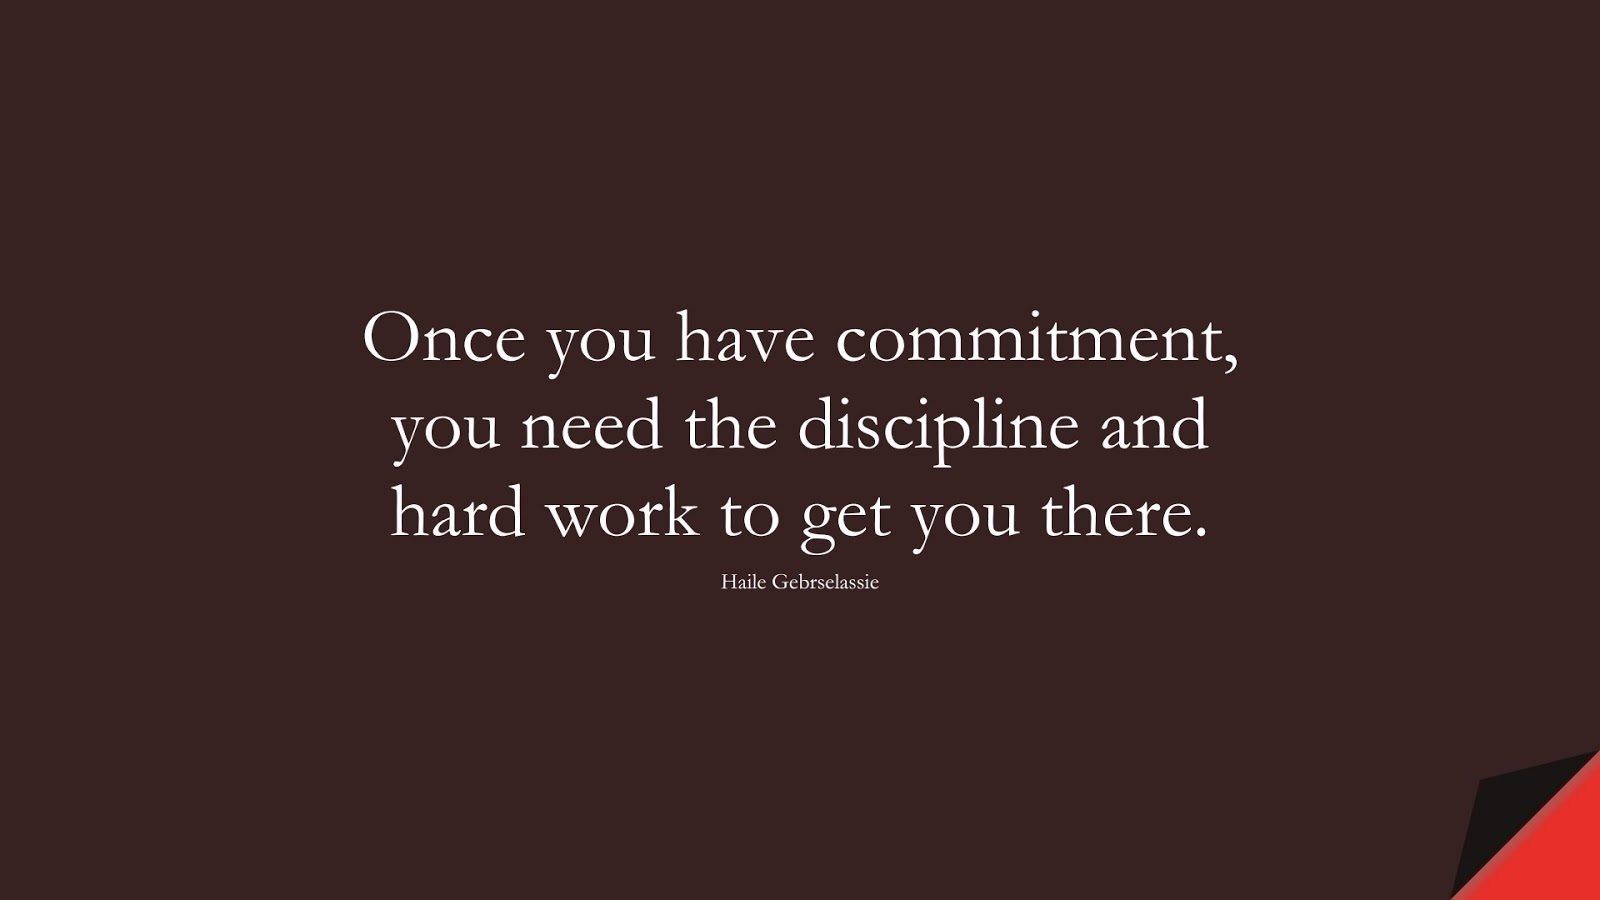 Once you have commitment, you need the discipline and hard work to get you there. (Haile Gebrselassie);  #HardWorkQuotes